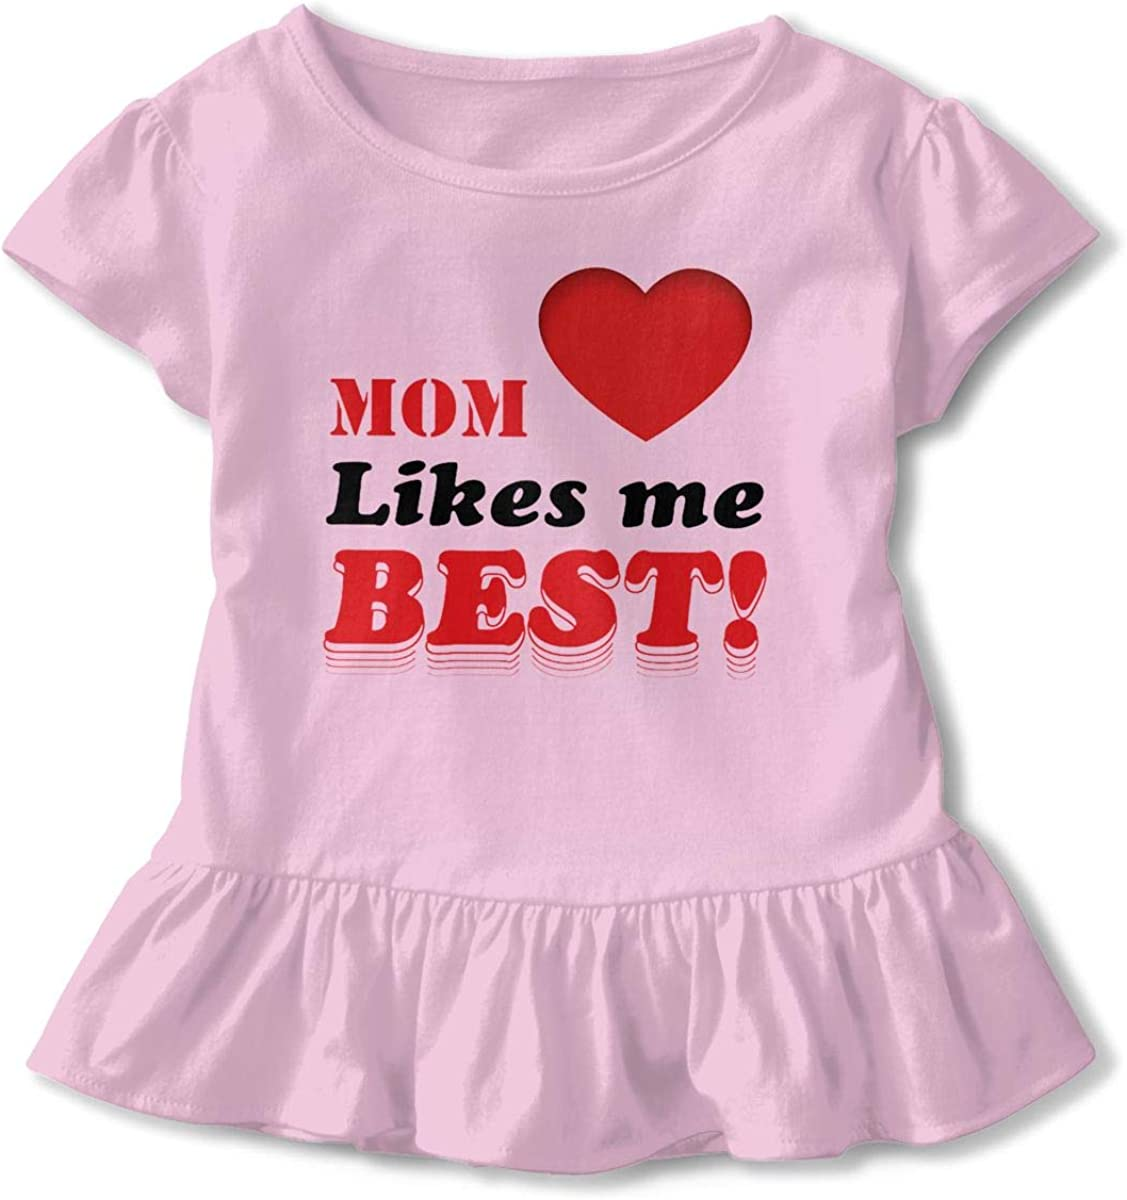 Mom Likes Me Infant Girl Short Sleeve T-Shirt Ruffles Casual Tops for 2-6 Years Old Baby